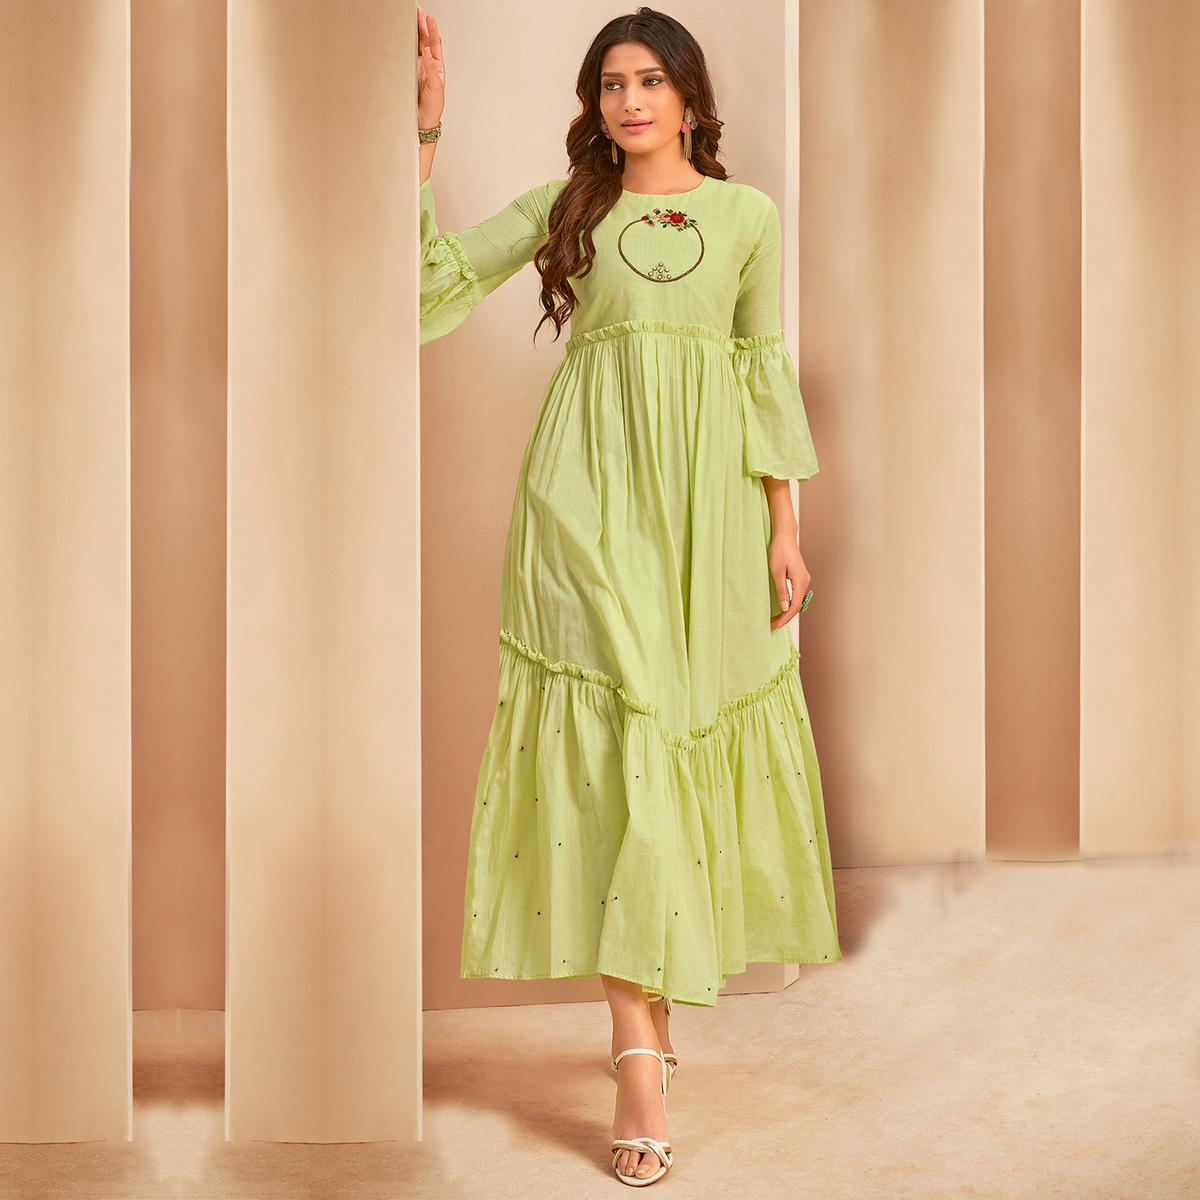 Demanding Light Green Colored Party Wear Thread Embroidered Flaired Cotton Long Kurti